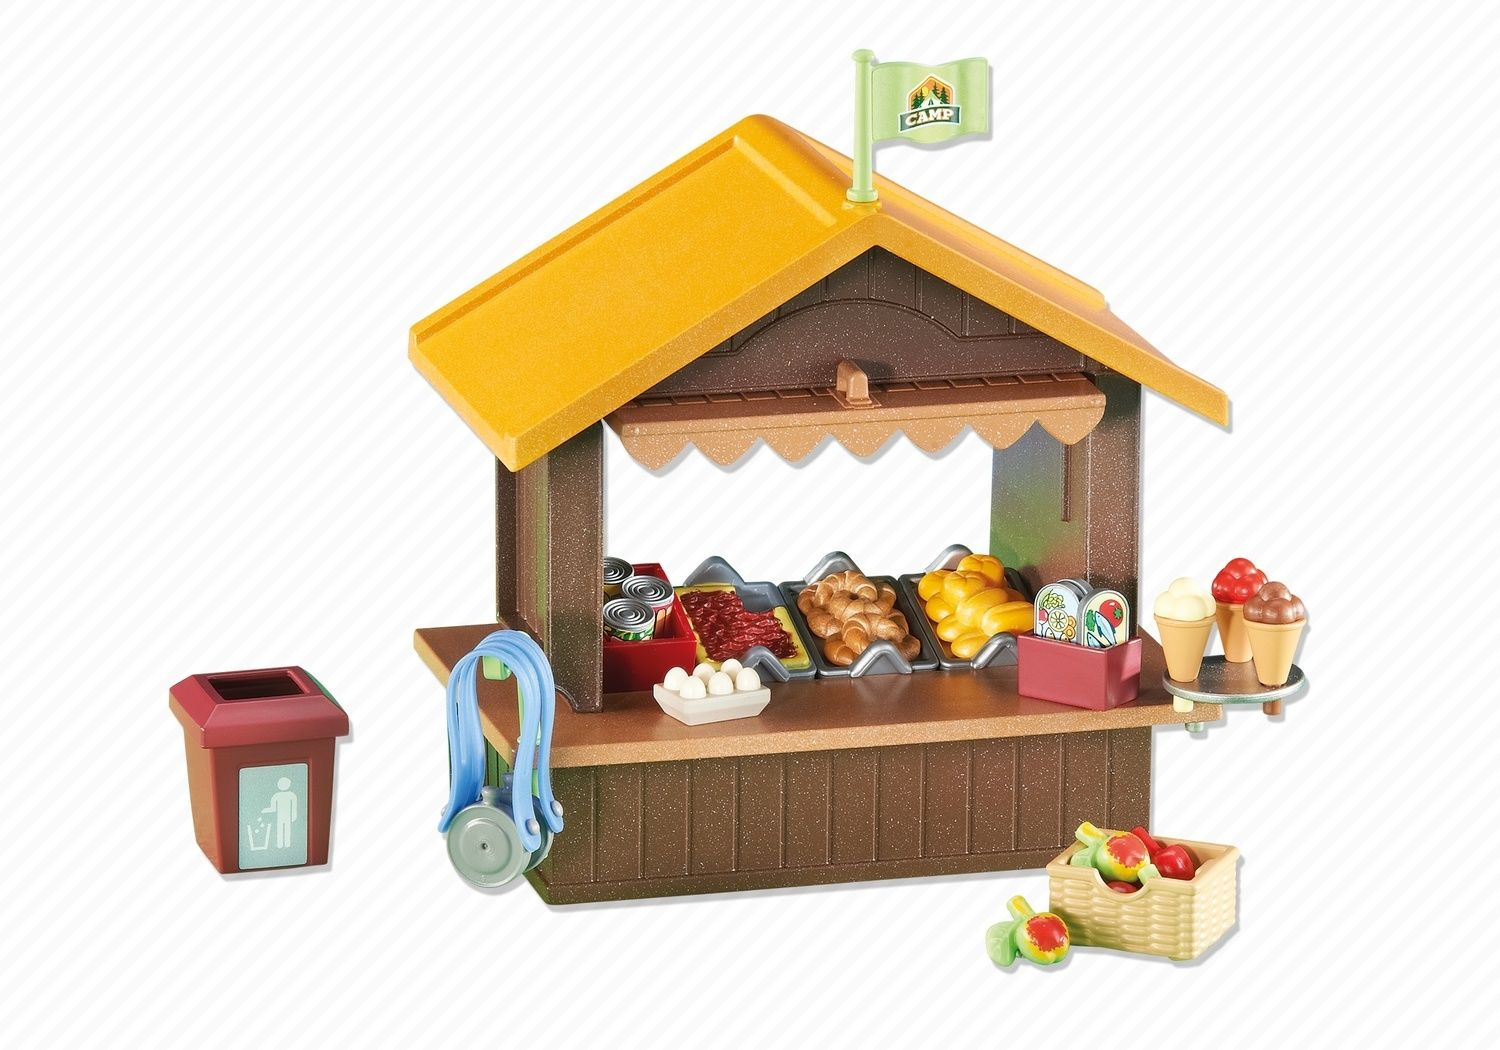 Summer Camp Kiosk Playmobil Accessories Decorations 6516